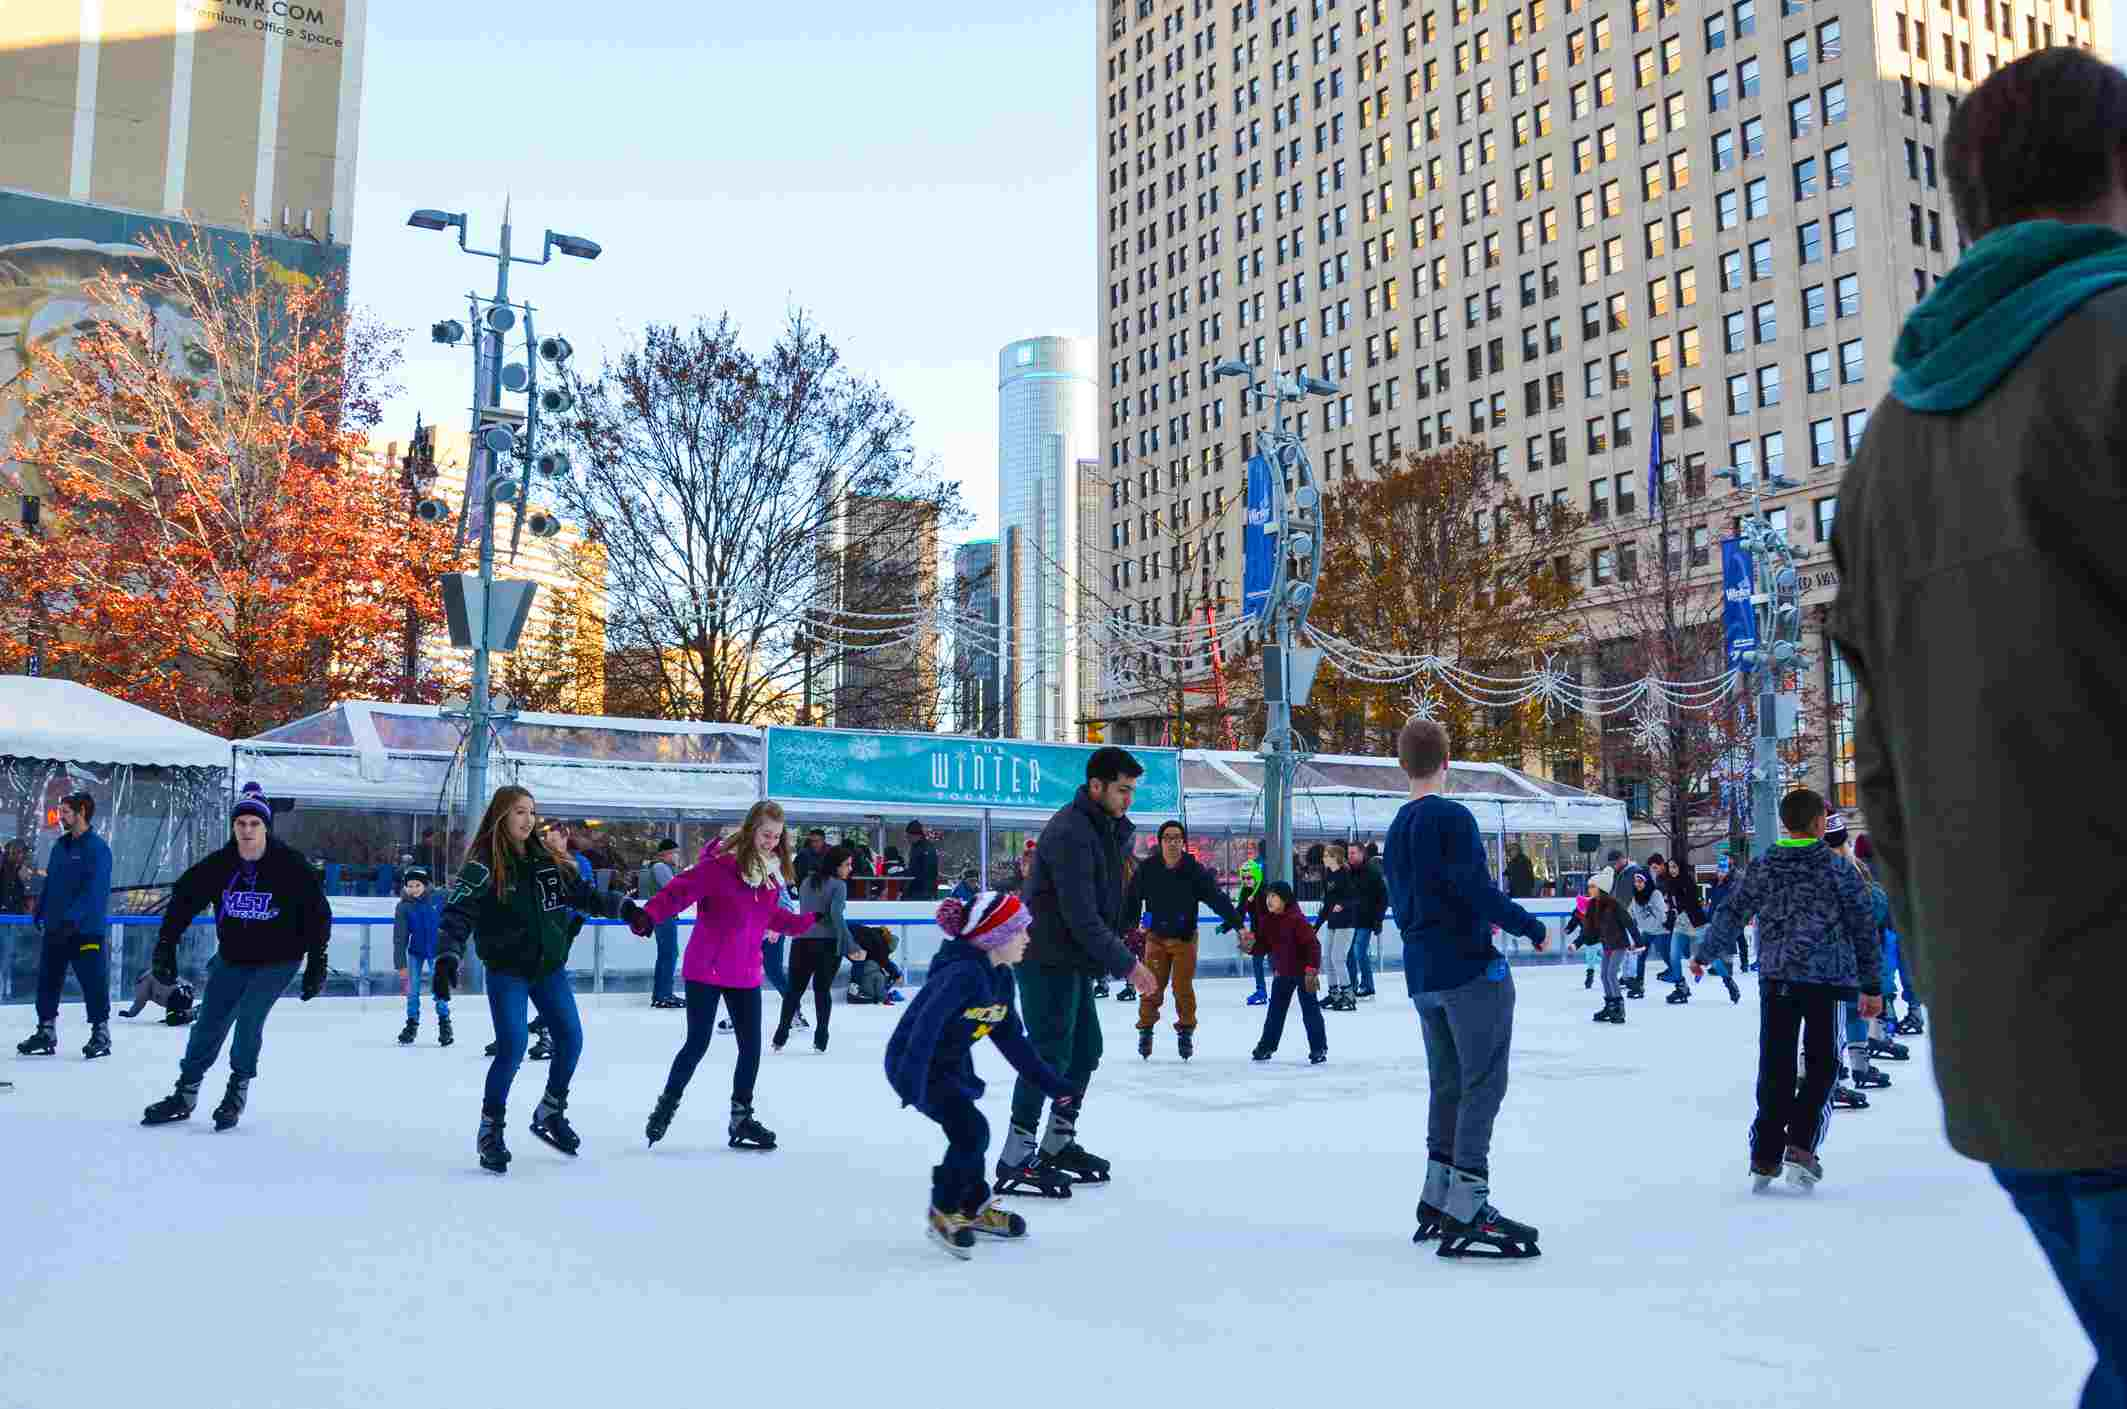 People skate in the rink at Campus Martius park in downtown Detroit.